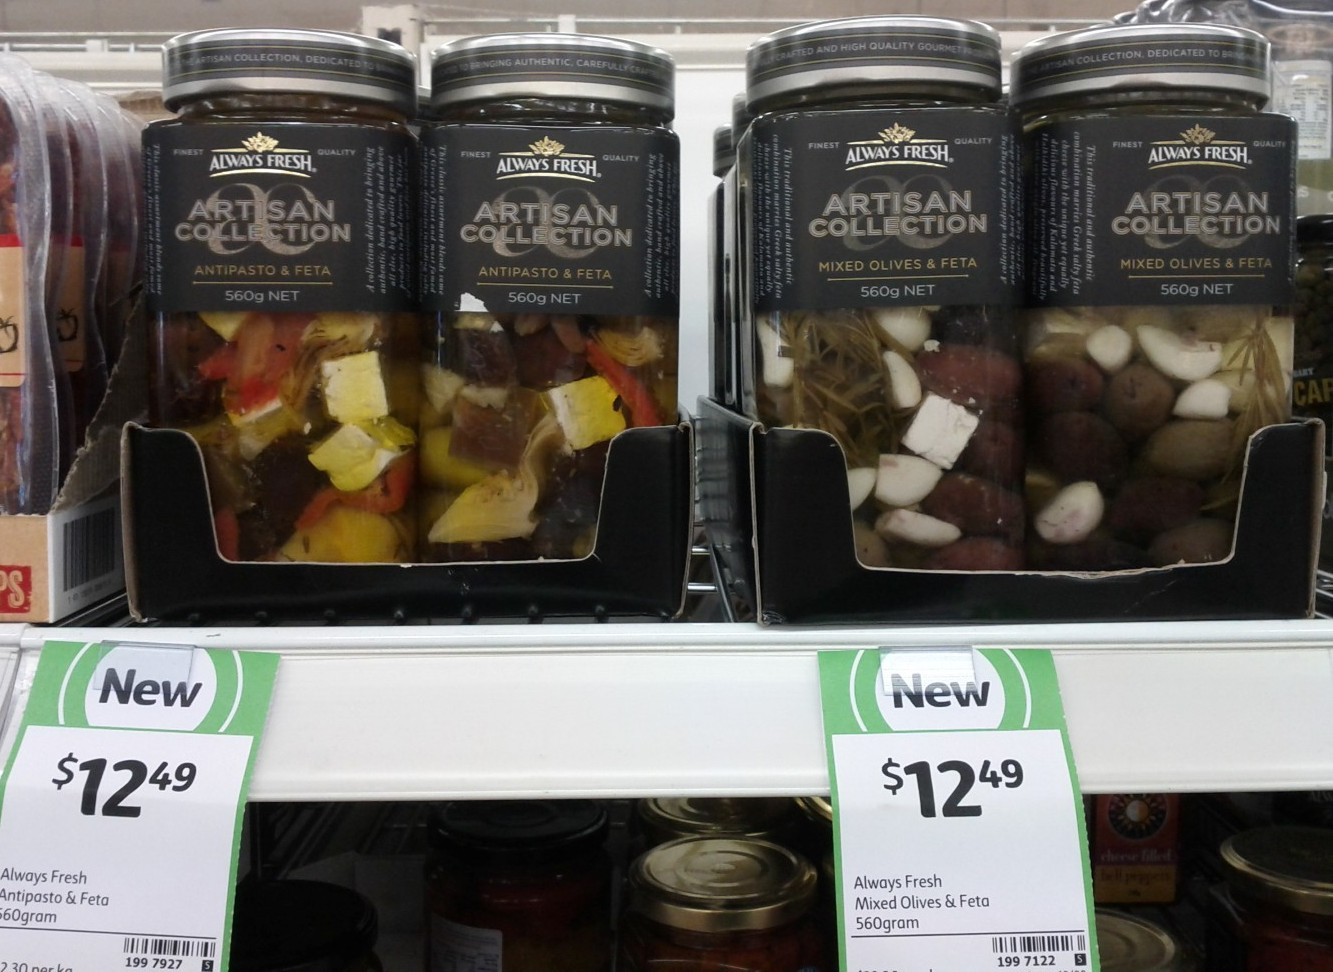 Always Fresh 560g Artisan Collection Antipasto & Feta, Mixed Olives & Feta